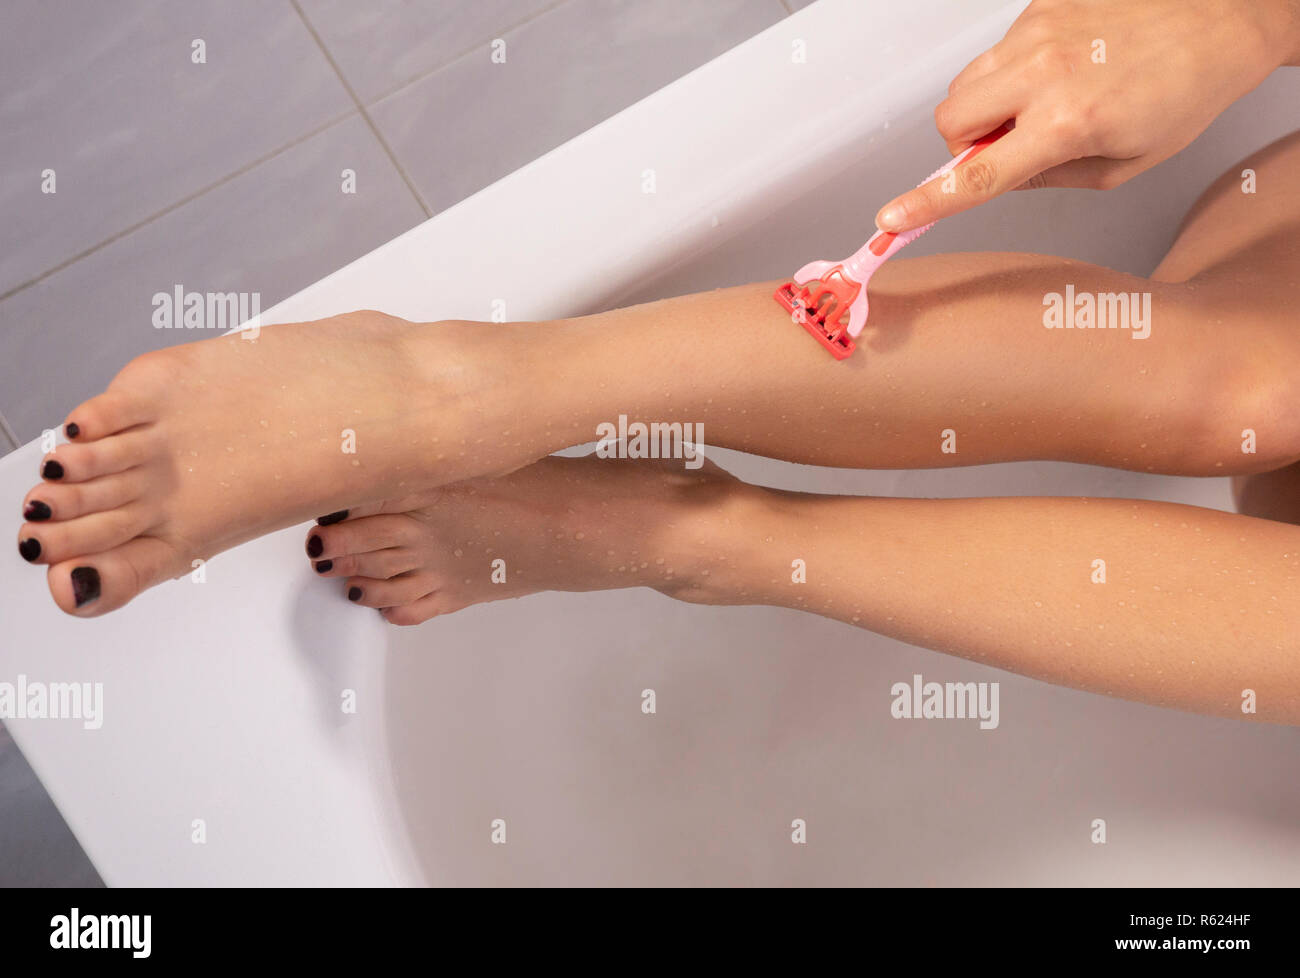 young woman shaving her legs with a razor blade - Stock Image